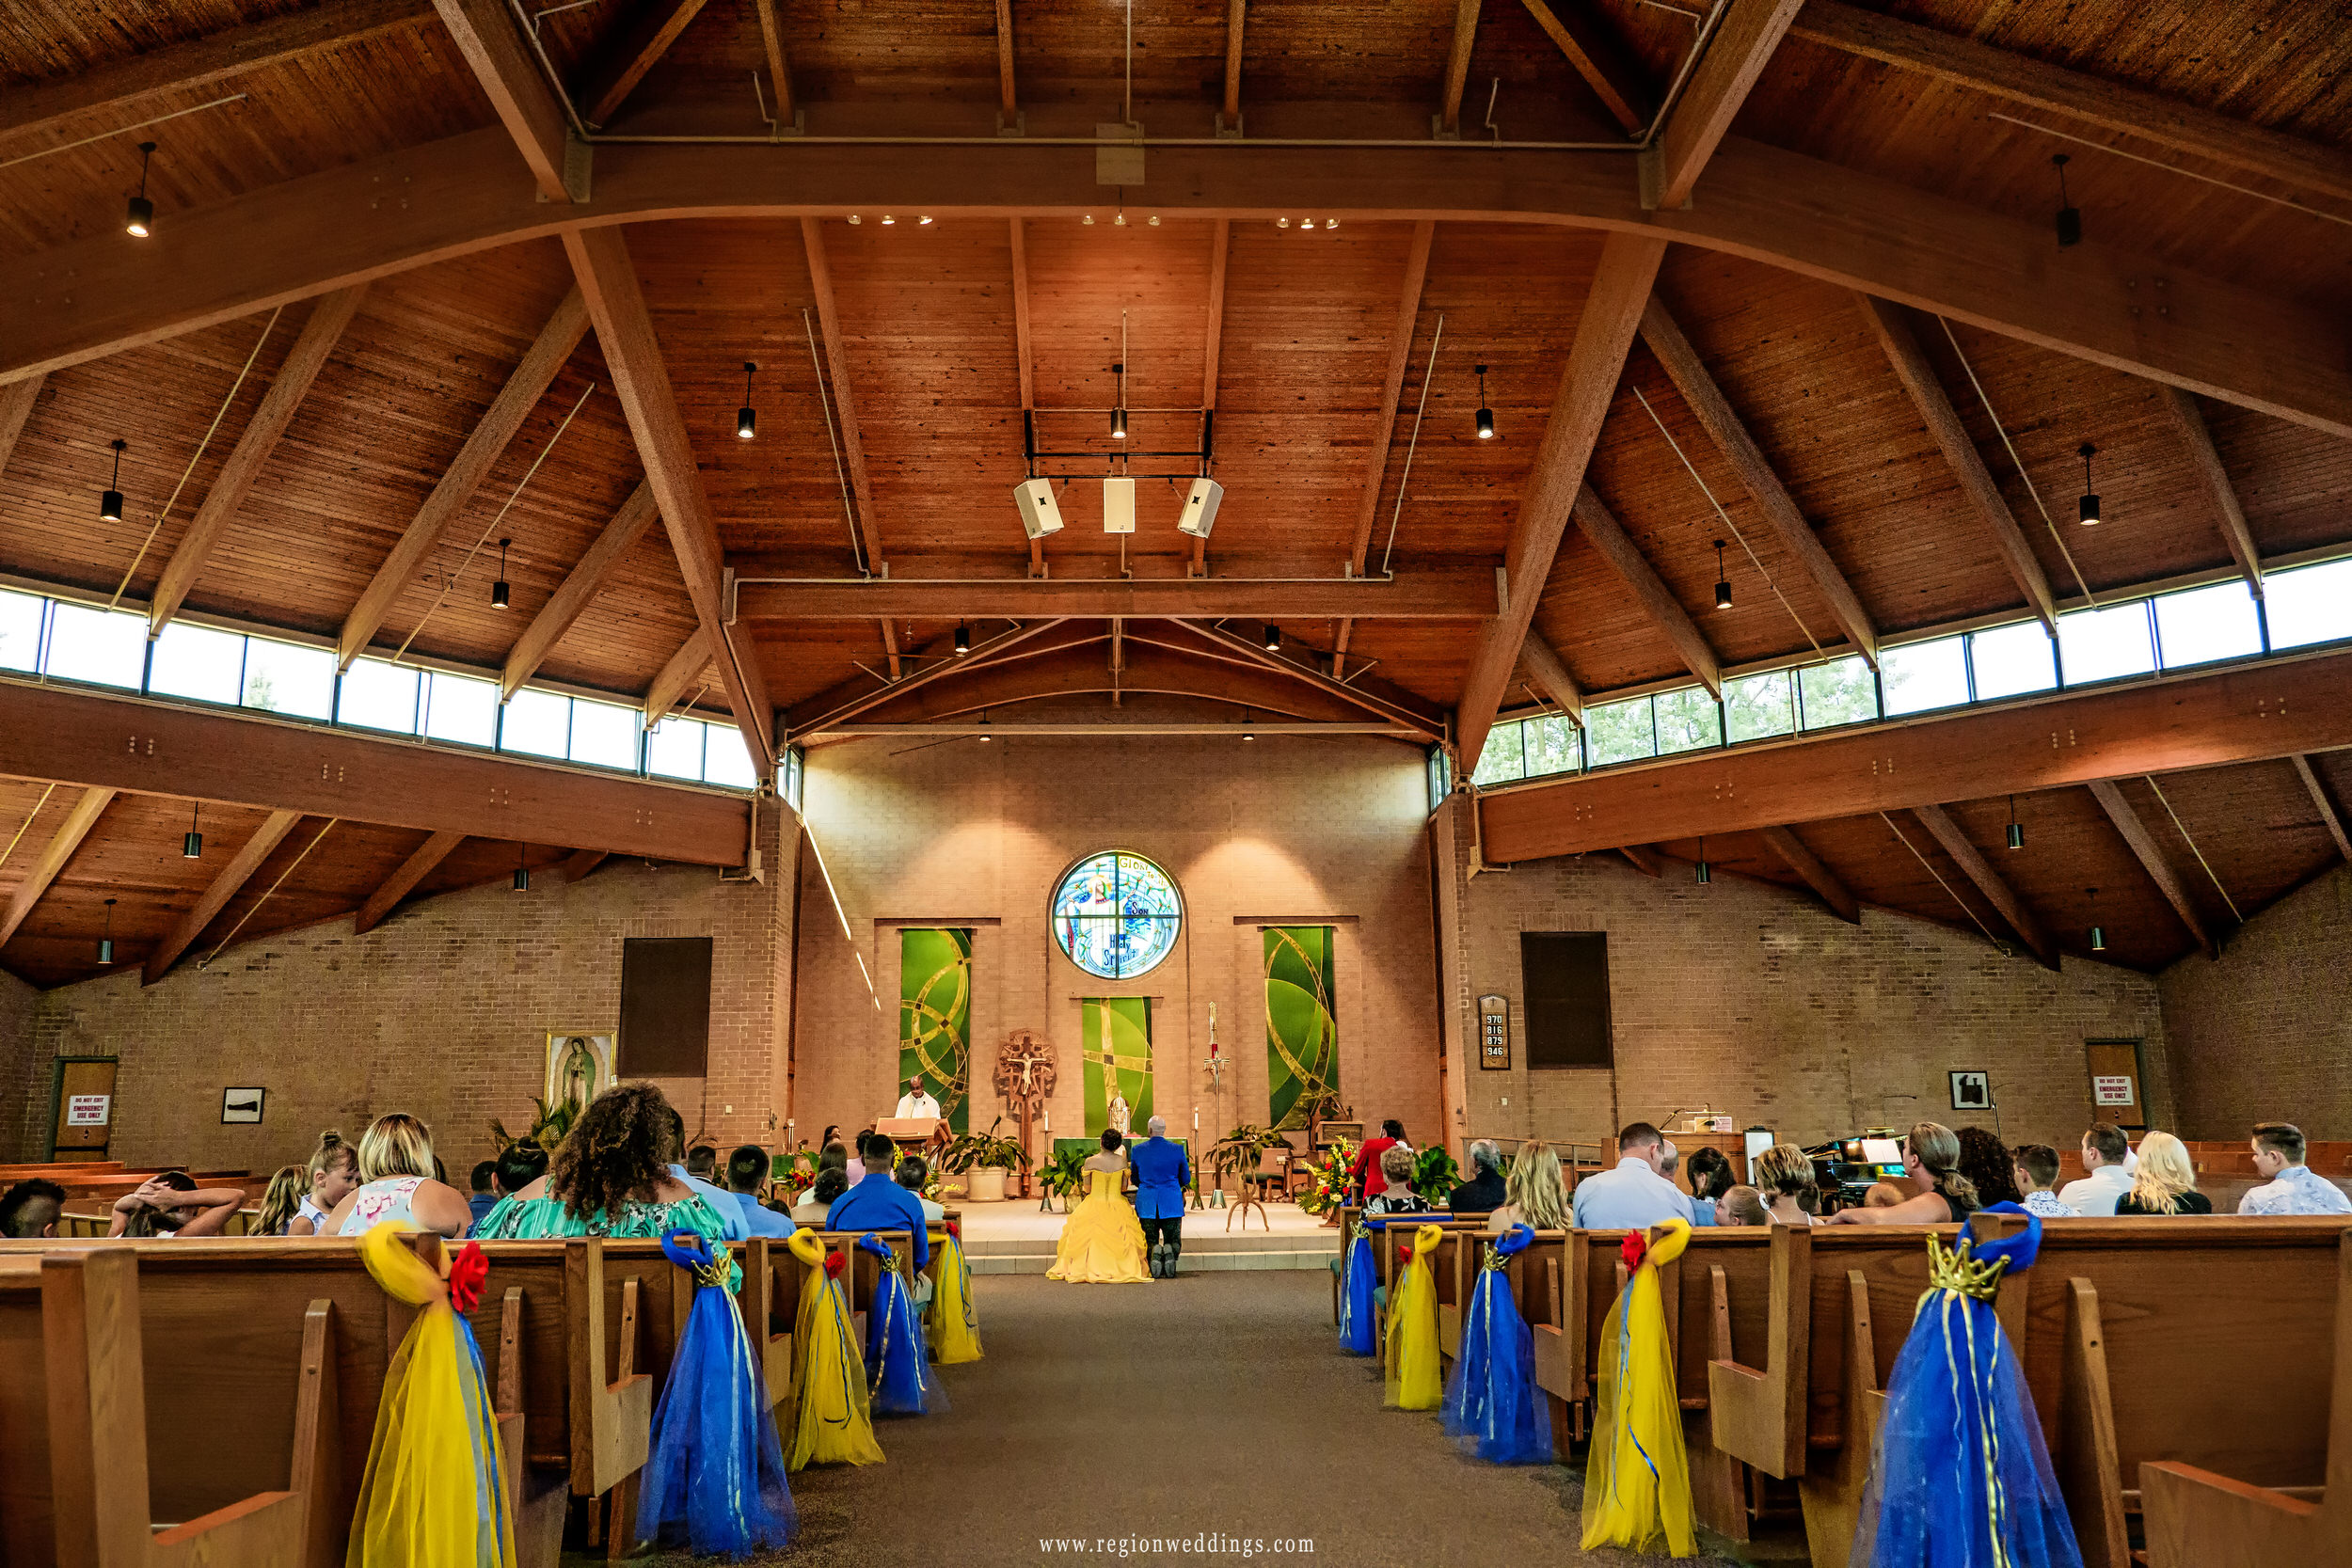 A summer wedding ceremony at St. Ann's Church.